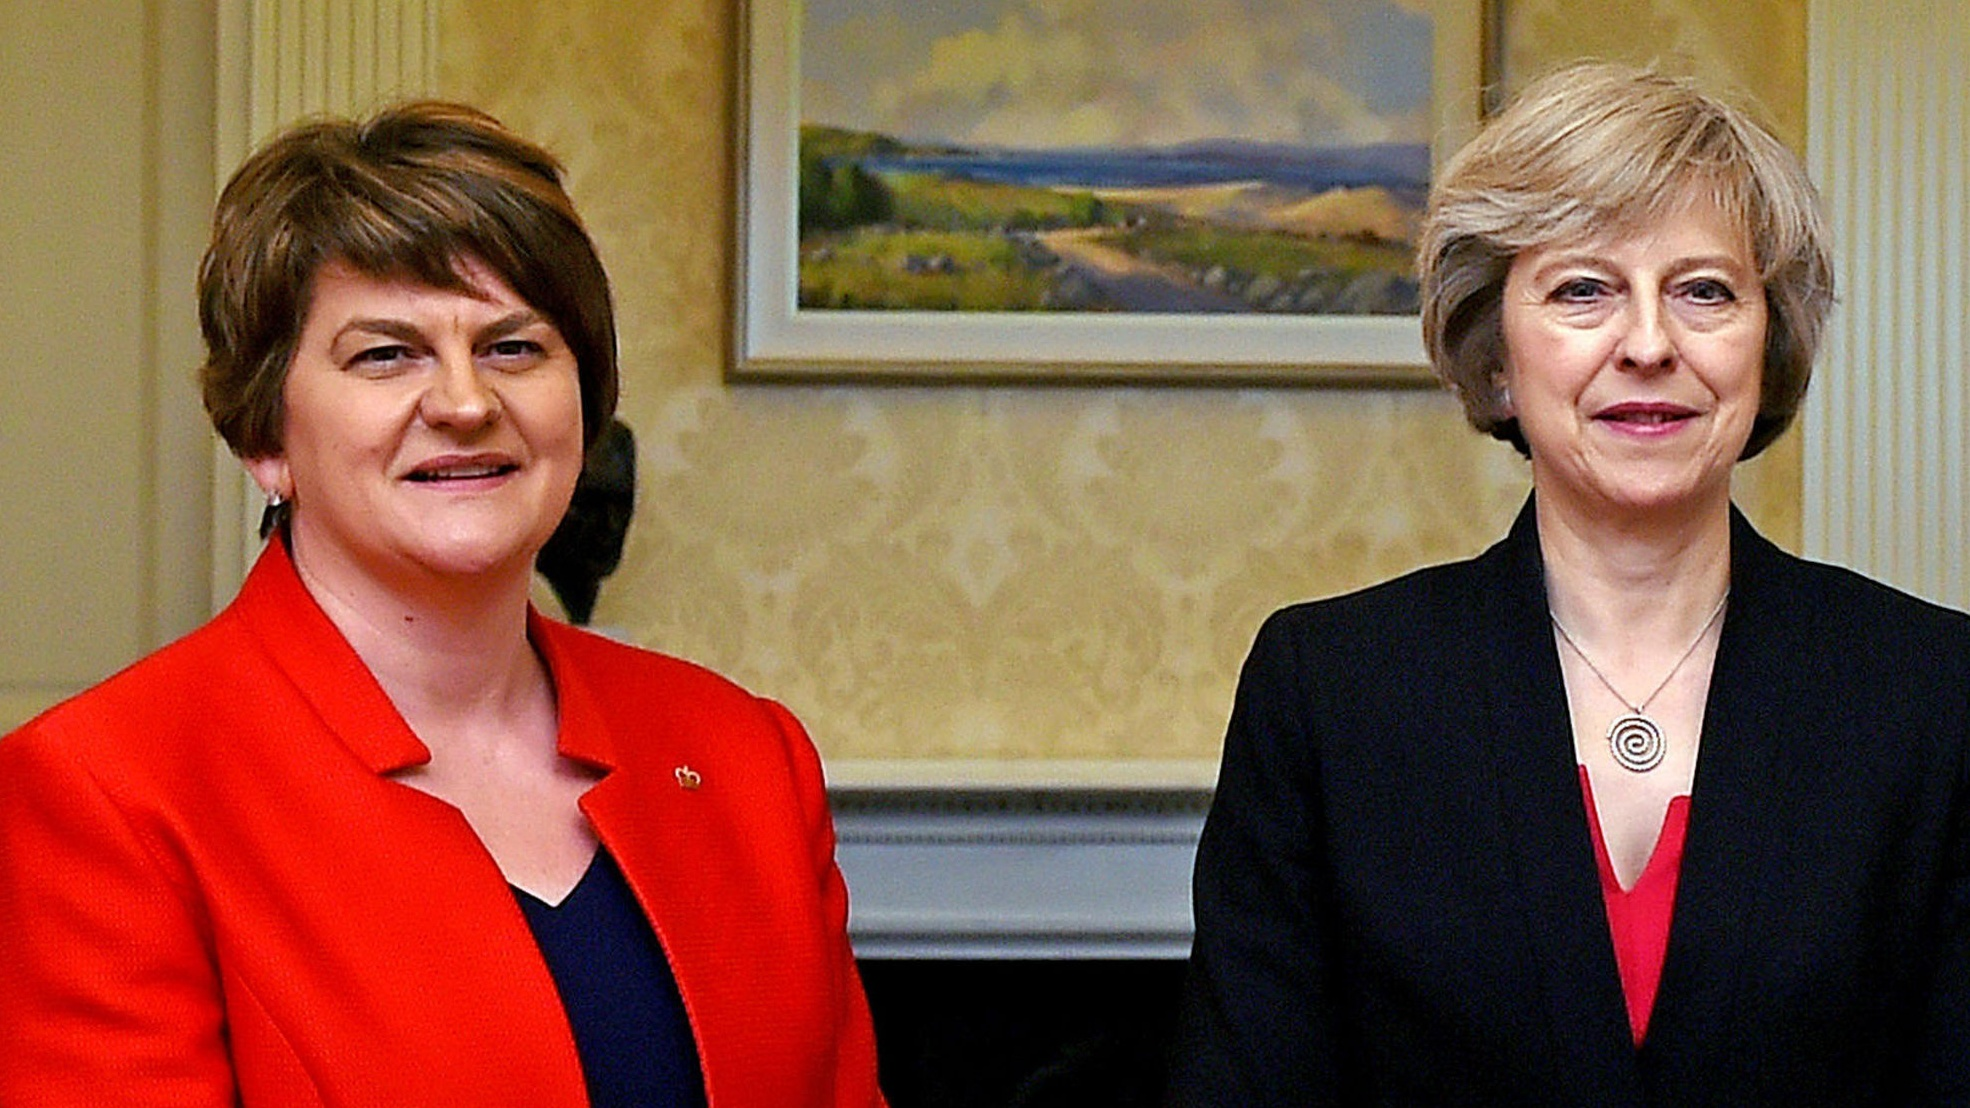 May starts DUP talks in bid to keep power